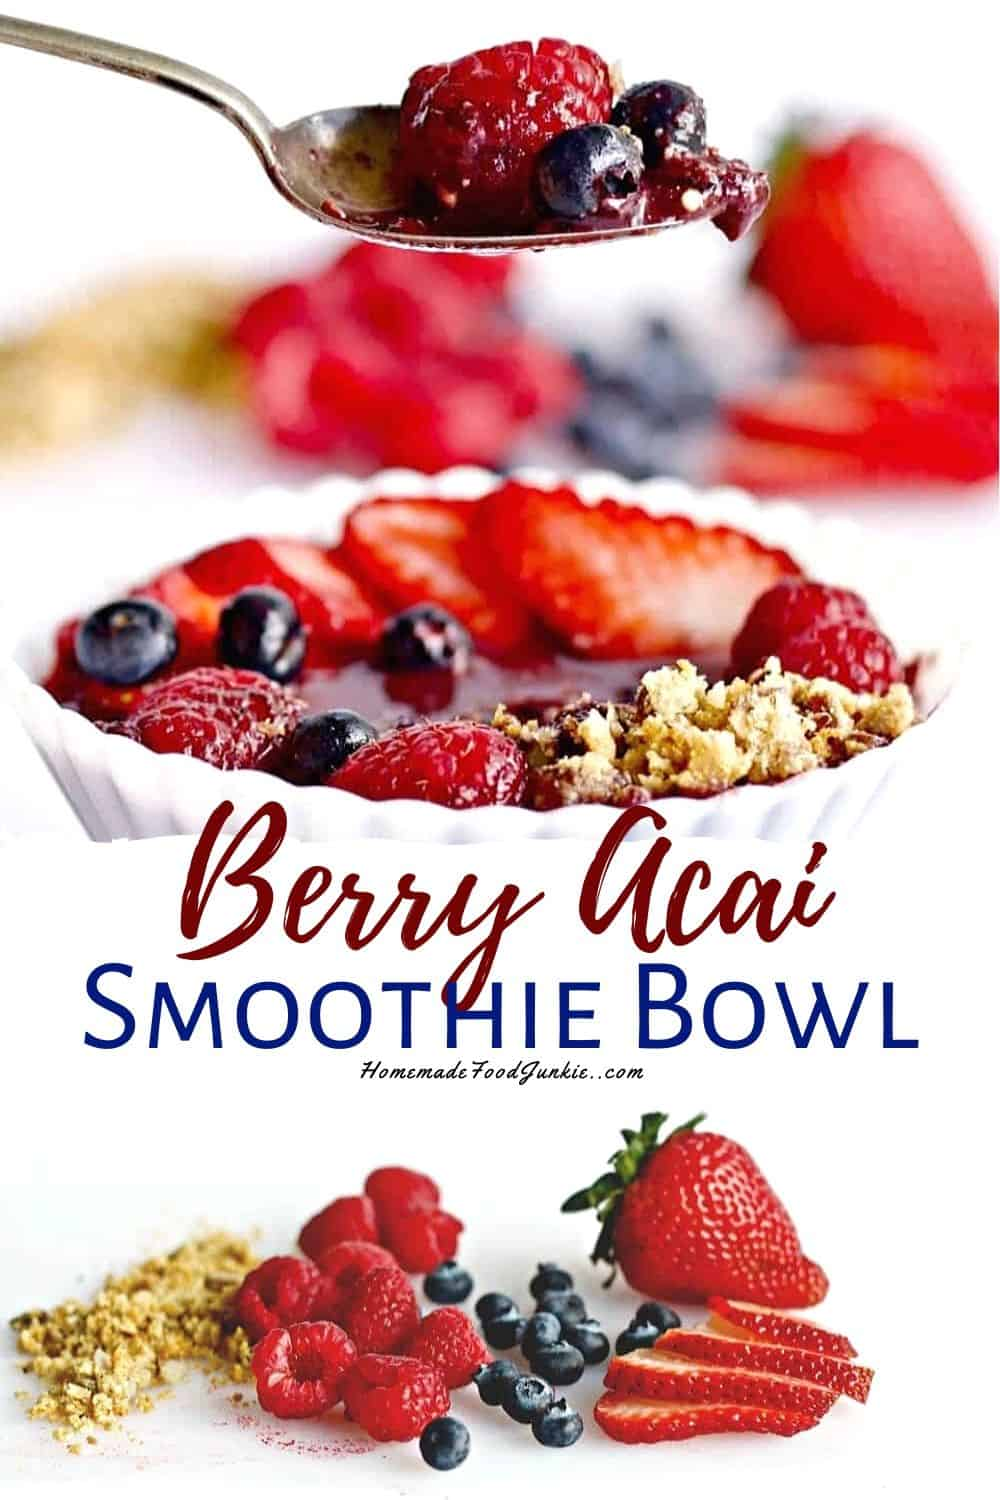 Berry Acai smoothie bowl-pin image